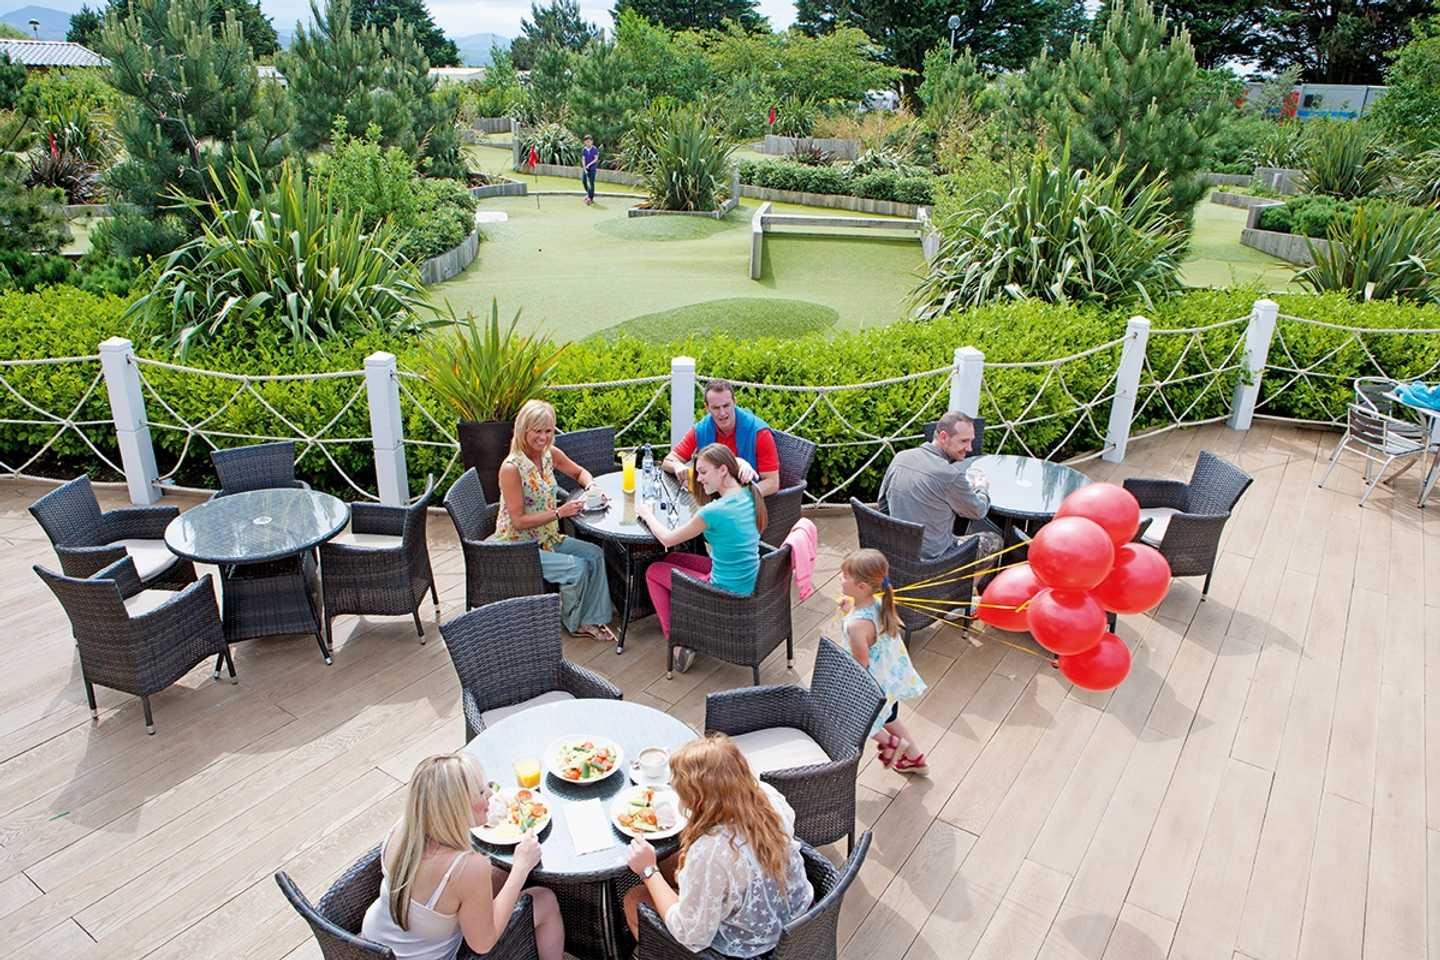 Guests eating on the terrace of the Mash and Barrel restaurant